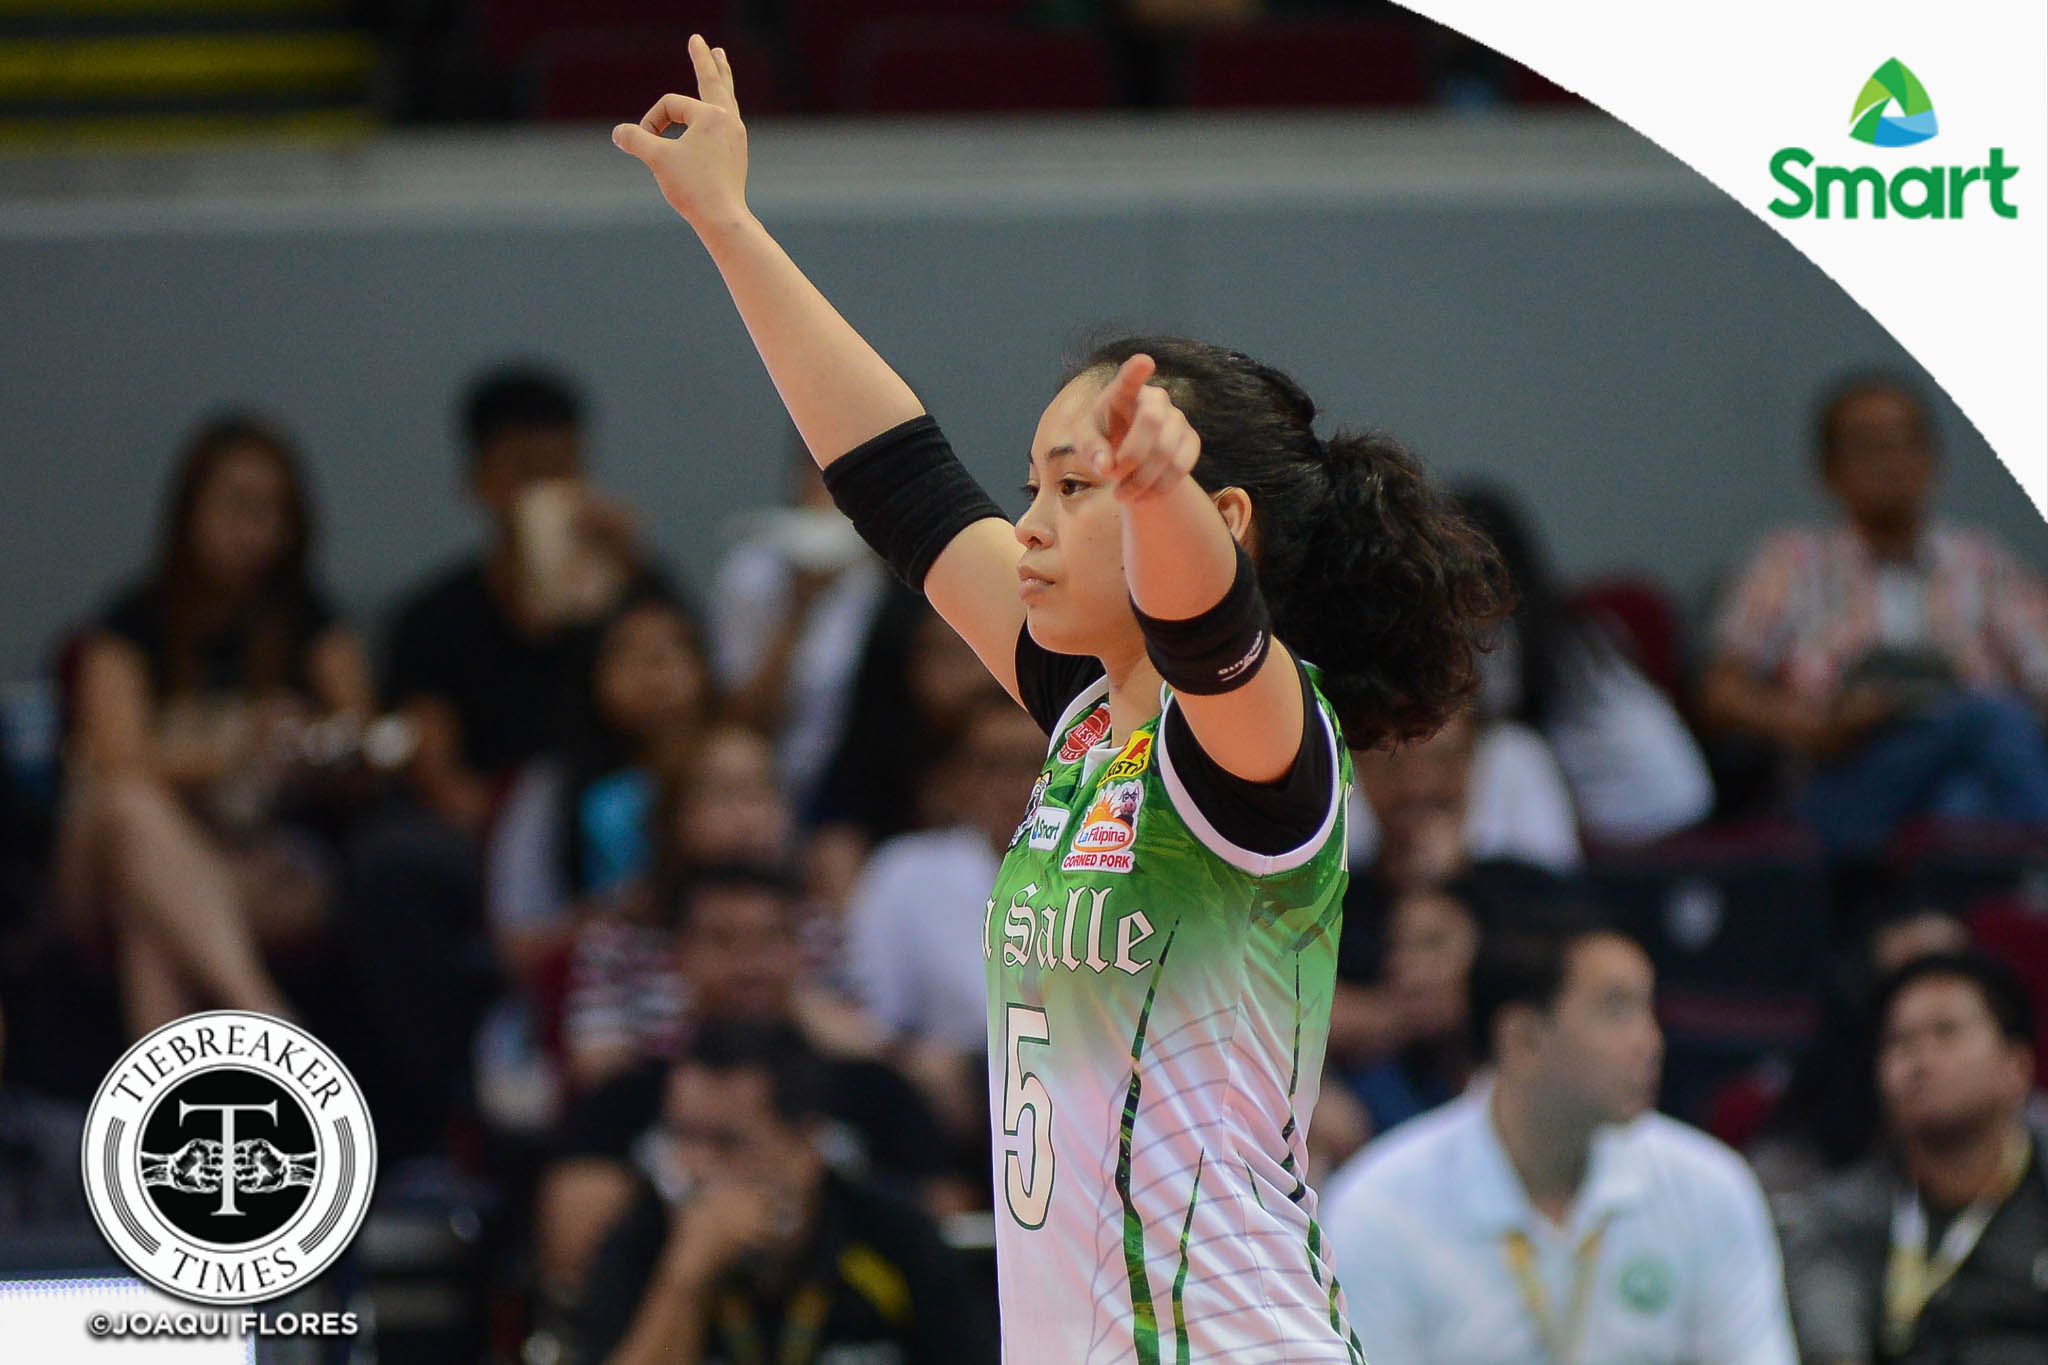 Philippine Sports News - Tiebreaker Times Nothing special, only hard work and preparation key to Macandili's success DLSU News UAAP Volleyball  UAAP Season 79 Women's Volleyball UAAP Season 79 DLSU Women's Volleyball Dawn Macandili